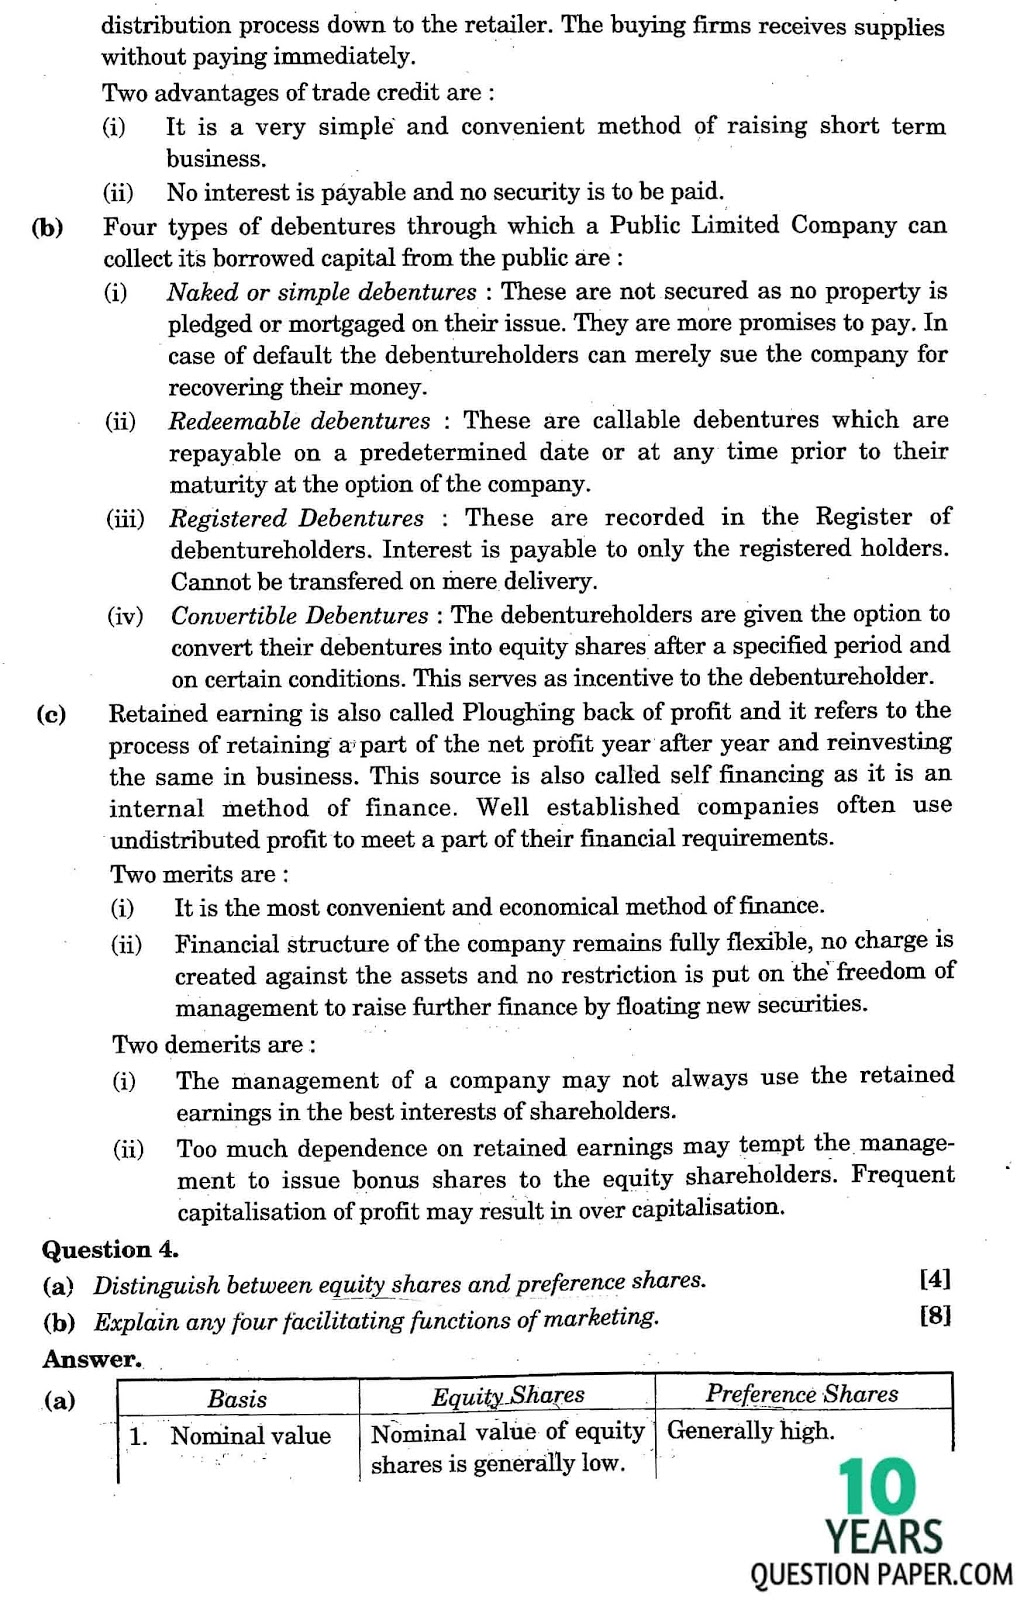 isc 2015 class 12th Commerce solved question paper